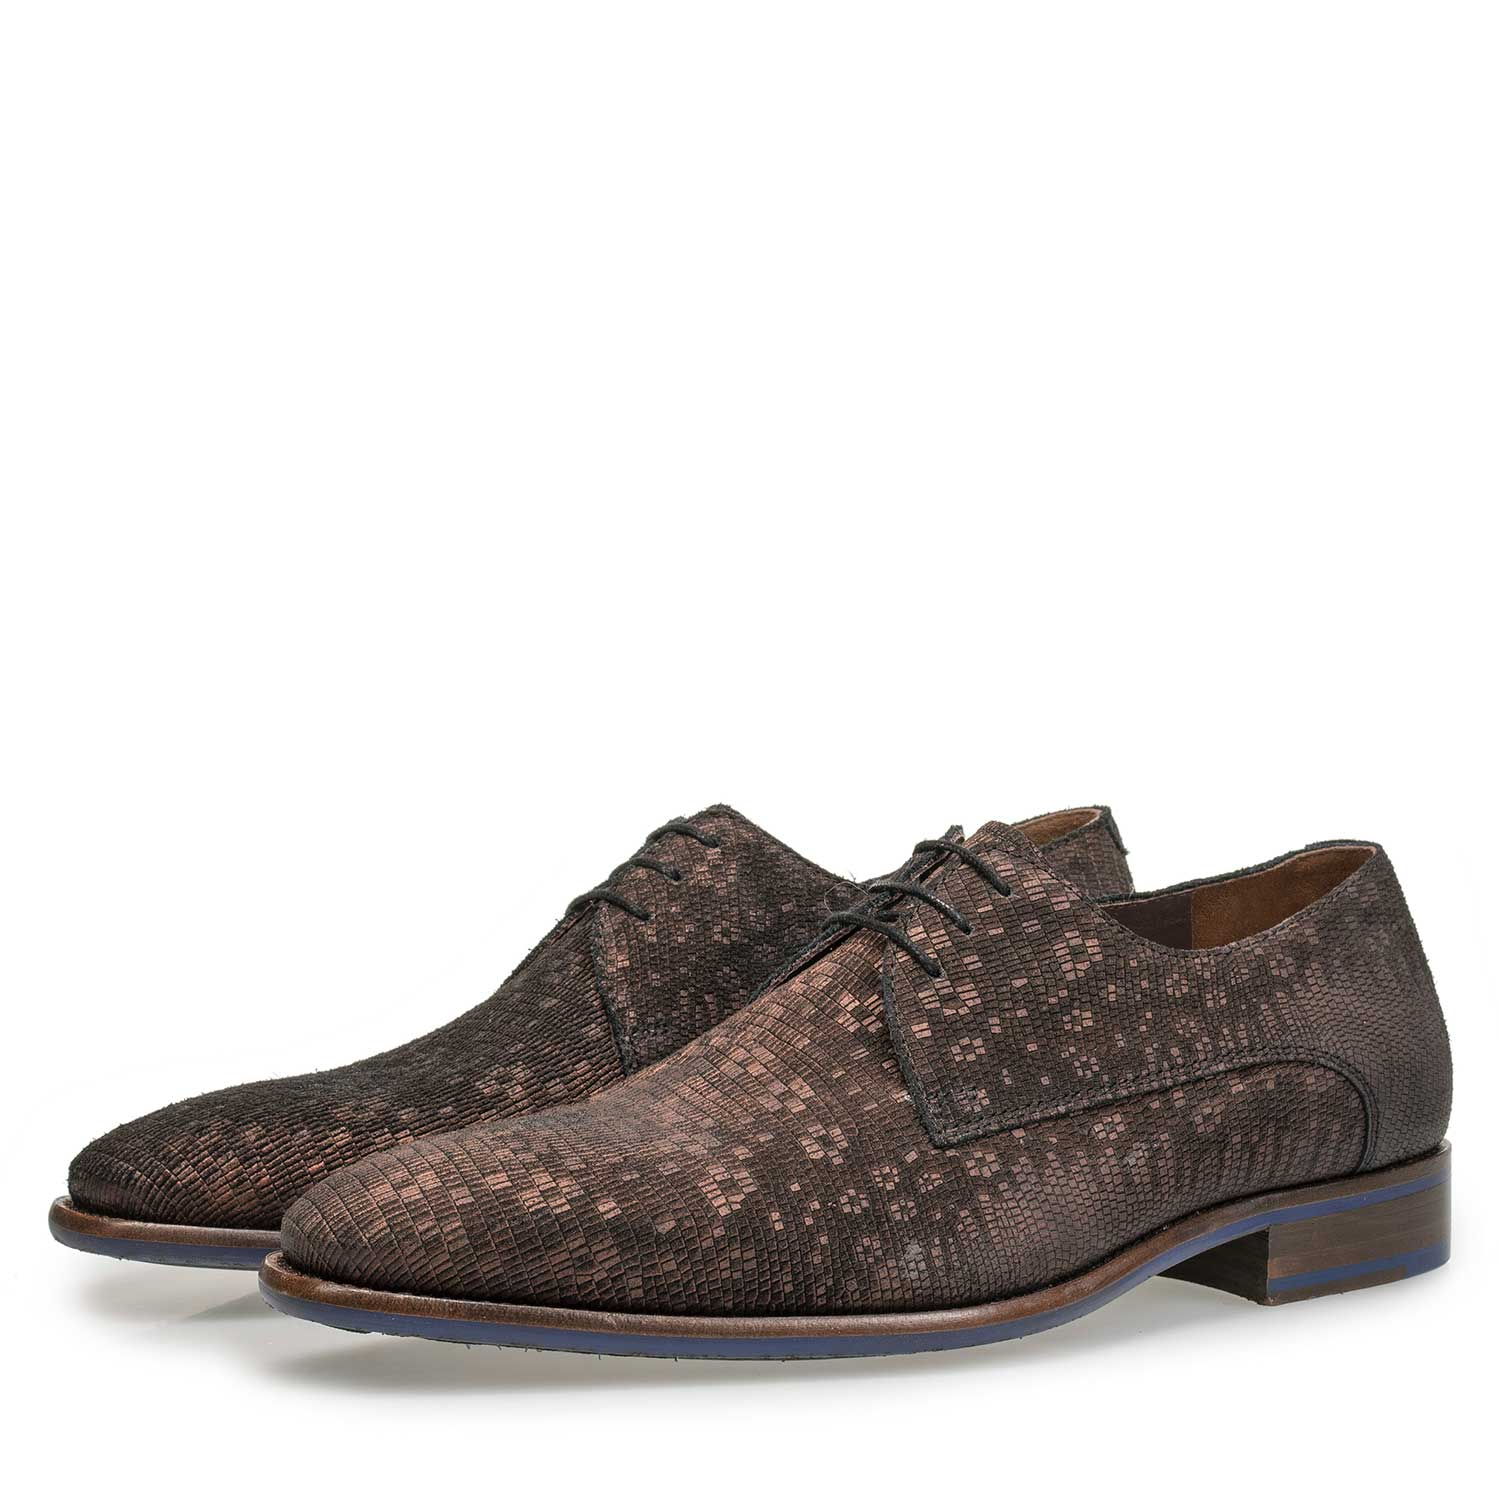 18078/00 - Brown lace shoe with structural pattern